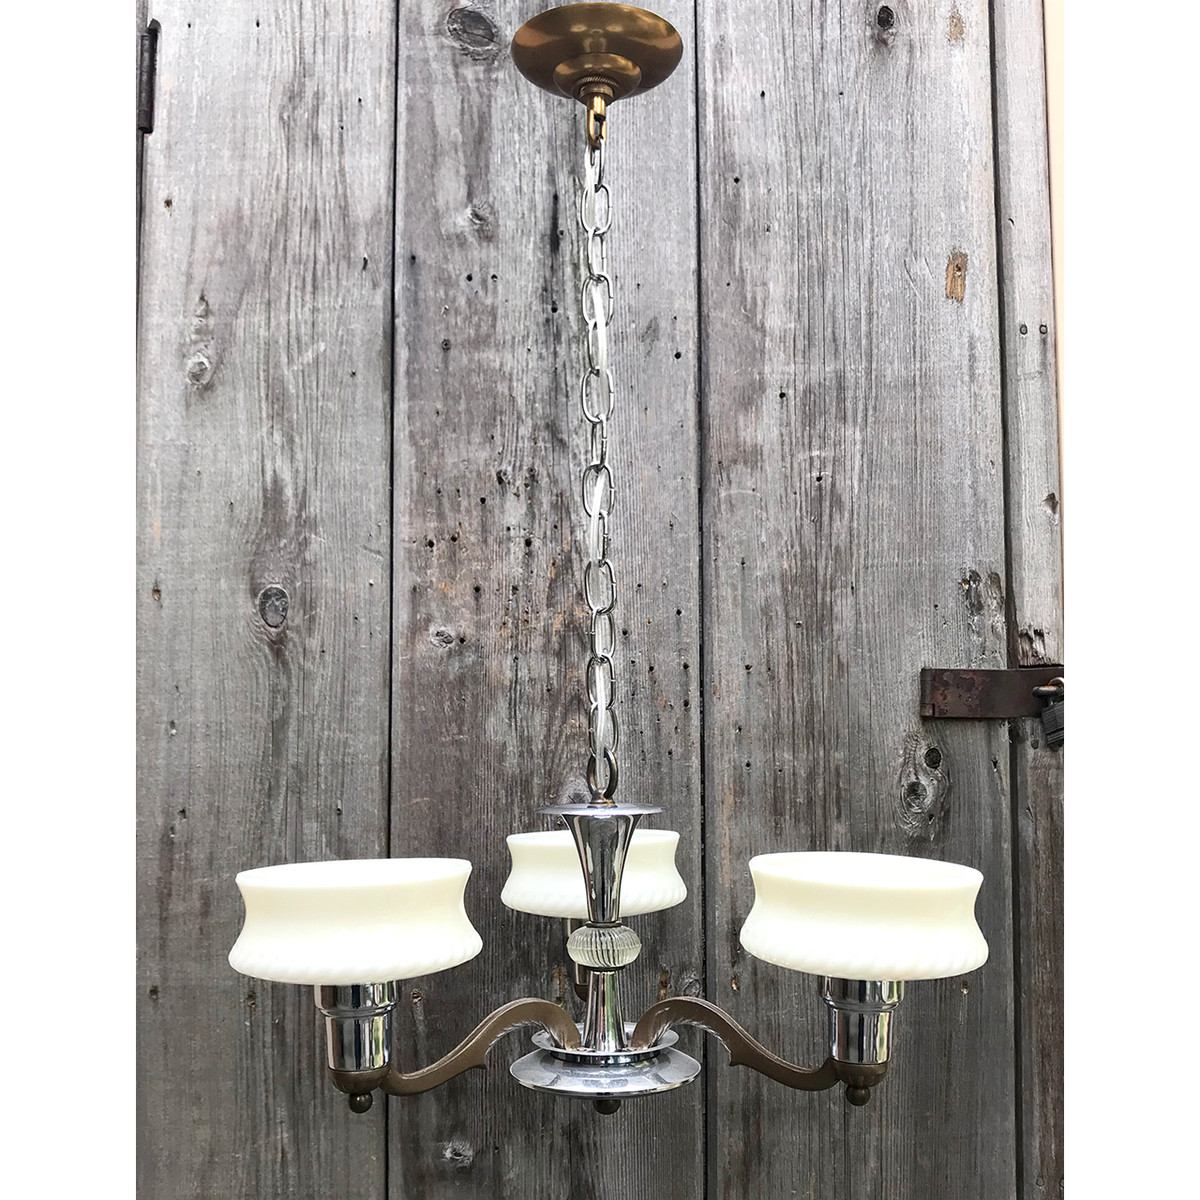 L17135 - Antique Art Moderne Three Light Ceiling Fixture